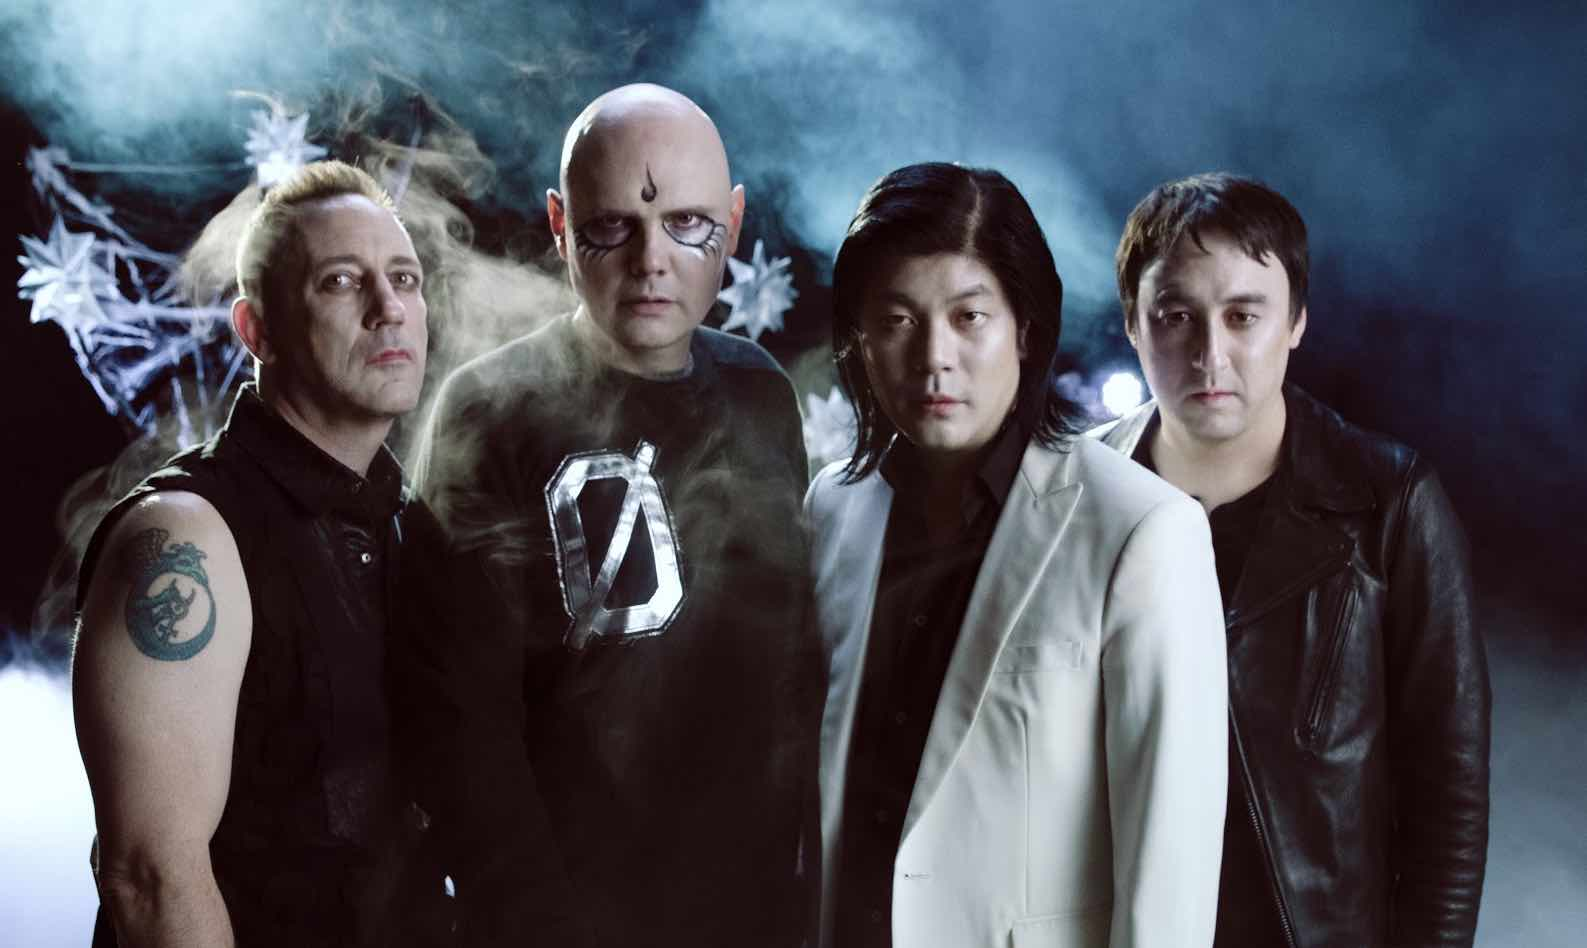 Shiny and Oh So Bright: Ya puedes escuchar el nuevo disco de The Smashing Pumpkins